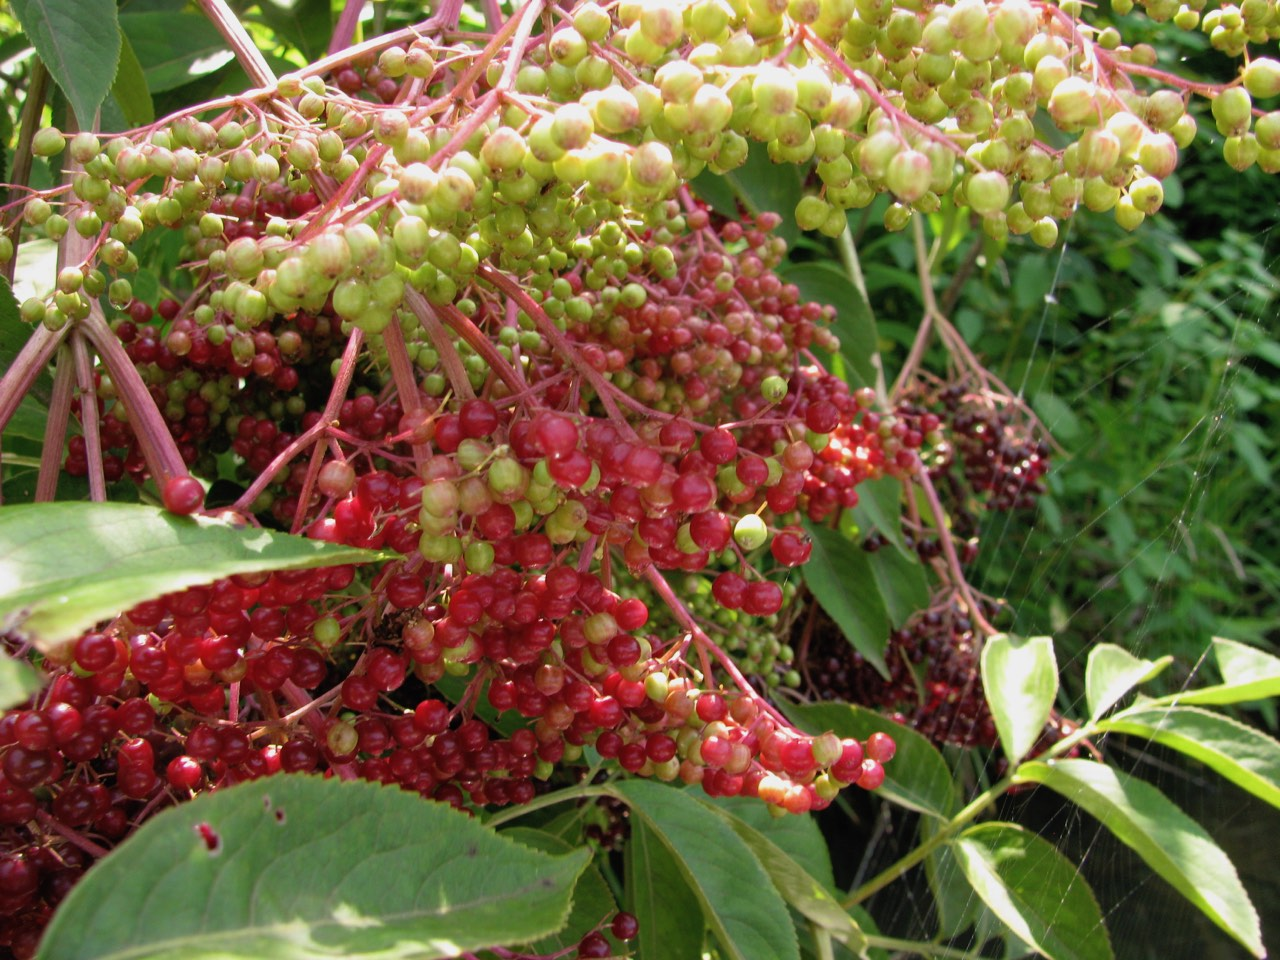 The Scientific Name is Sambucus canadensis. You will likely hear them called Common Elderberry. This picture shows the Close-up of ripening berries of Sambucus canadensis